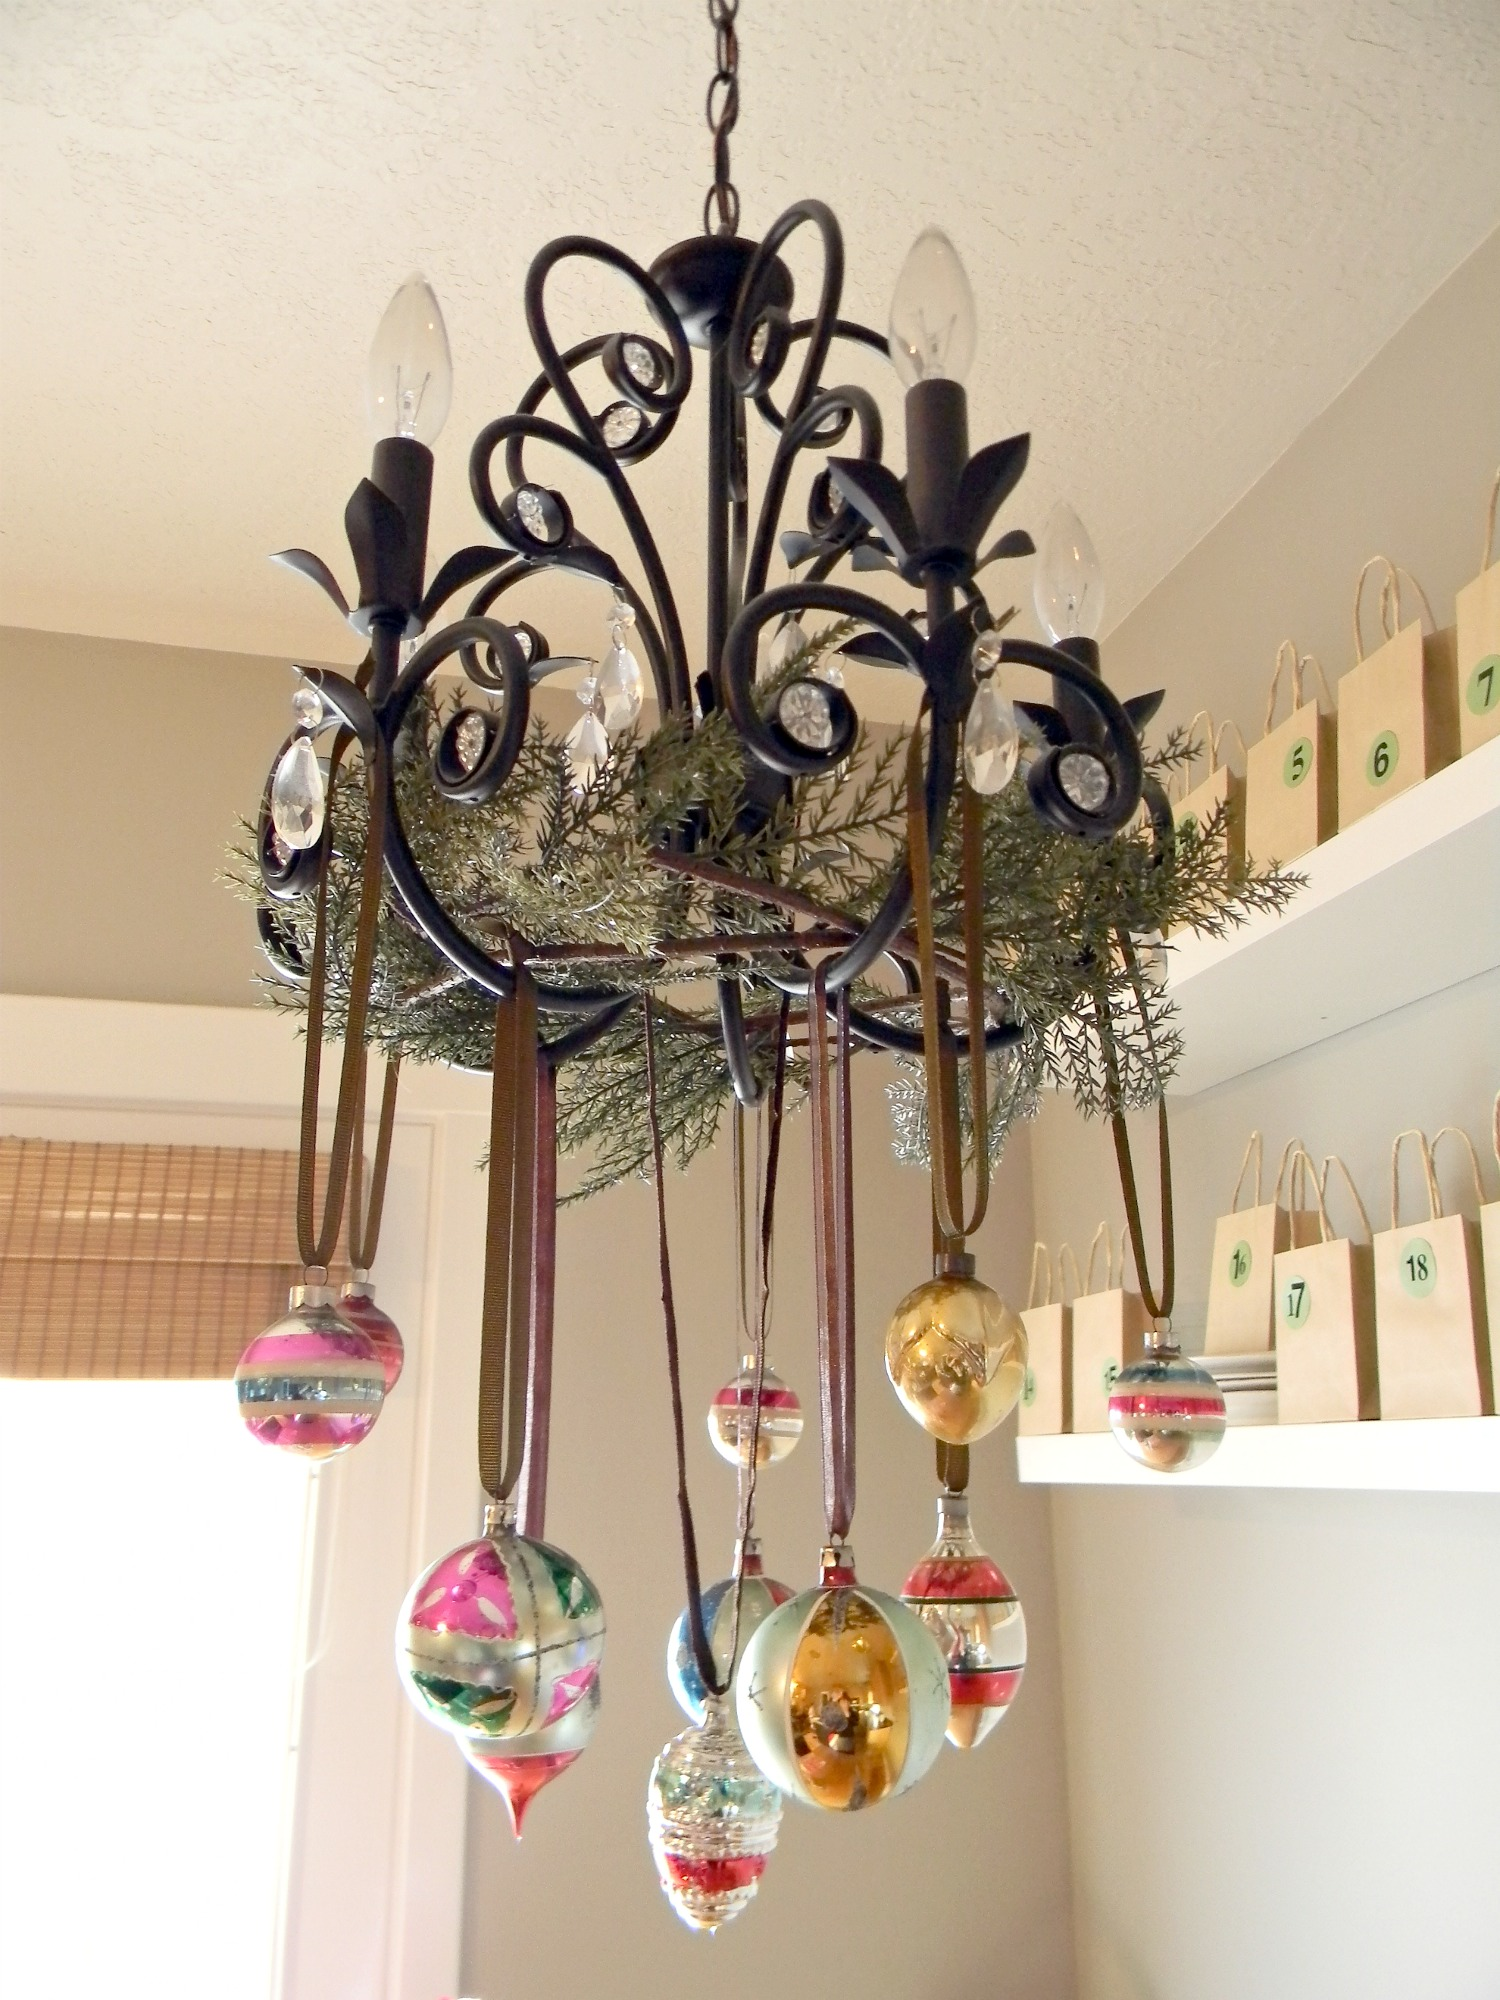 Natural outdoorsy woodsy christmas decor organize and for Hanging ornaments from chandelier